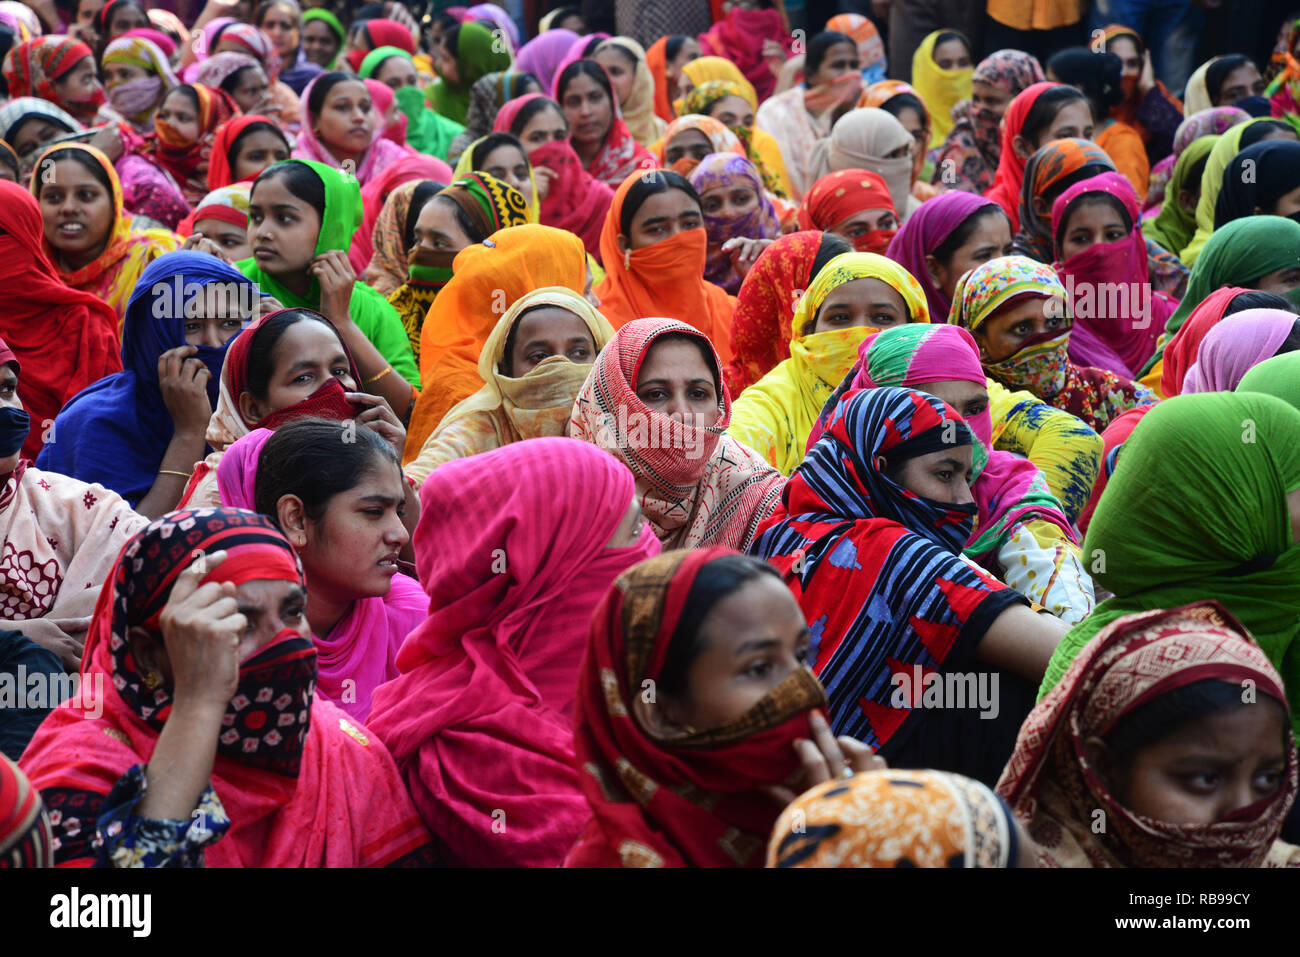 Dhaka, Bangladesh. 8th January, 2019. Bangladeshi garments worker block a road during a protest in Dhaka, Bangladesh, on 08, 2019. Hundreds of Garment workers have been protesting since 6 December to demand the government implement the new wage structure it has declared for the sector, including the minimum wage. Credit: Mamunur Rashid/Alamy Live News - Stock Image